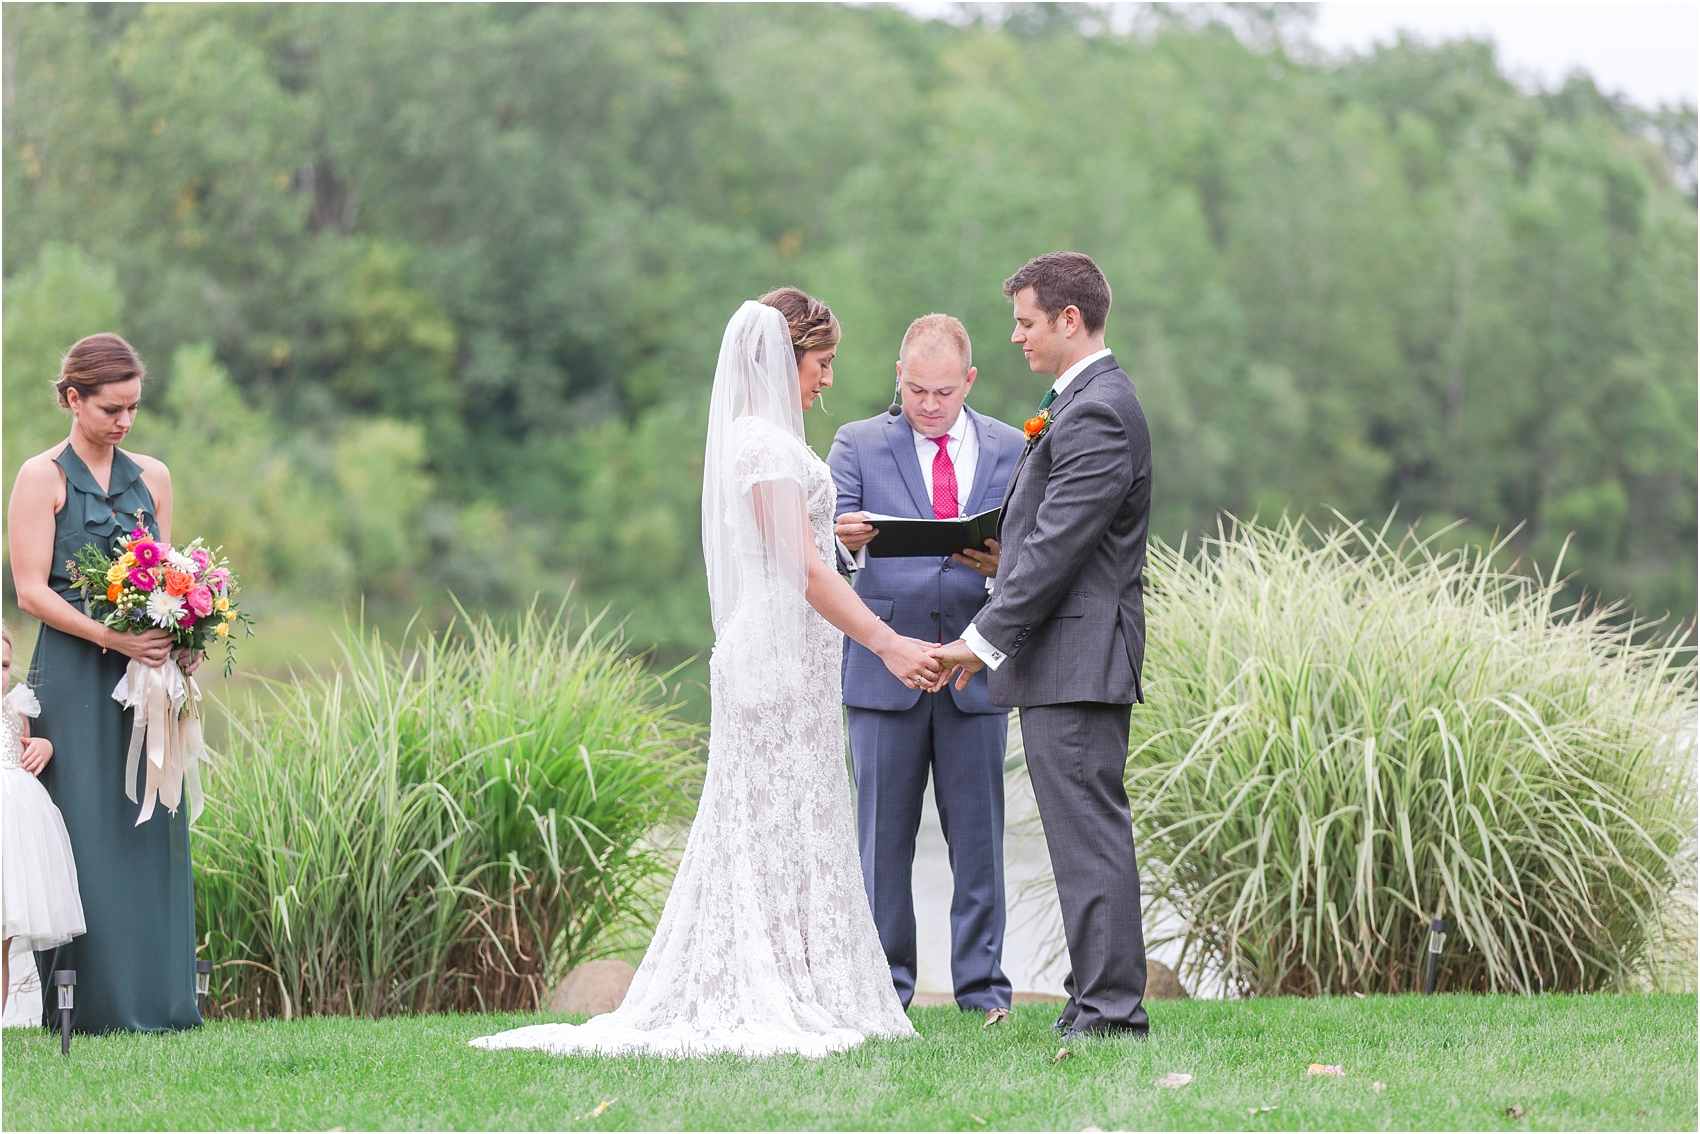 romantic-intimate-backyard-wedding-photos-at-private-estate-in-ann-arbor-mi-by-courtney-carolyn-photography_0097.jpg